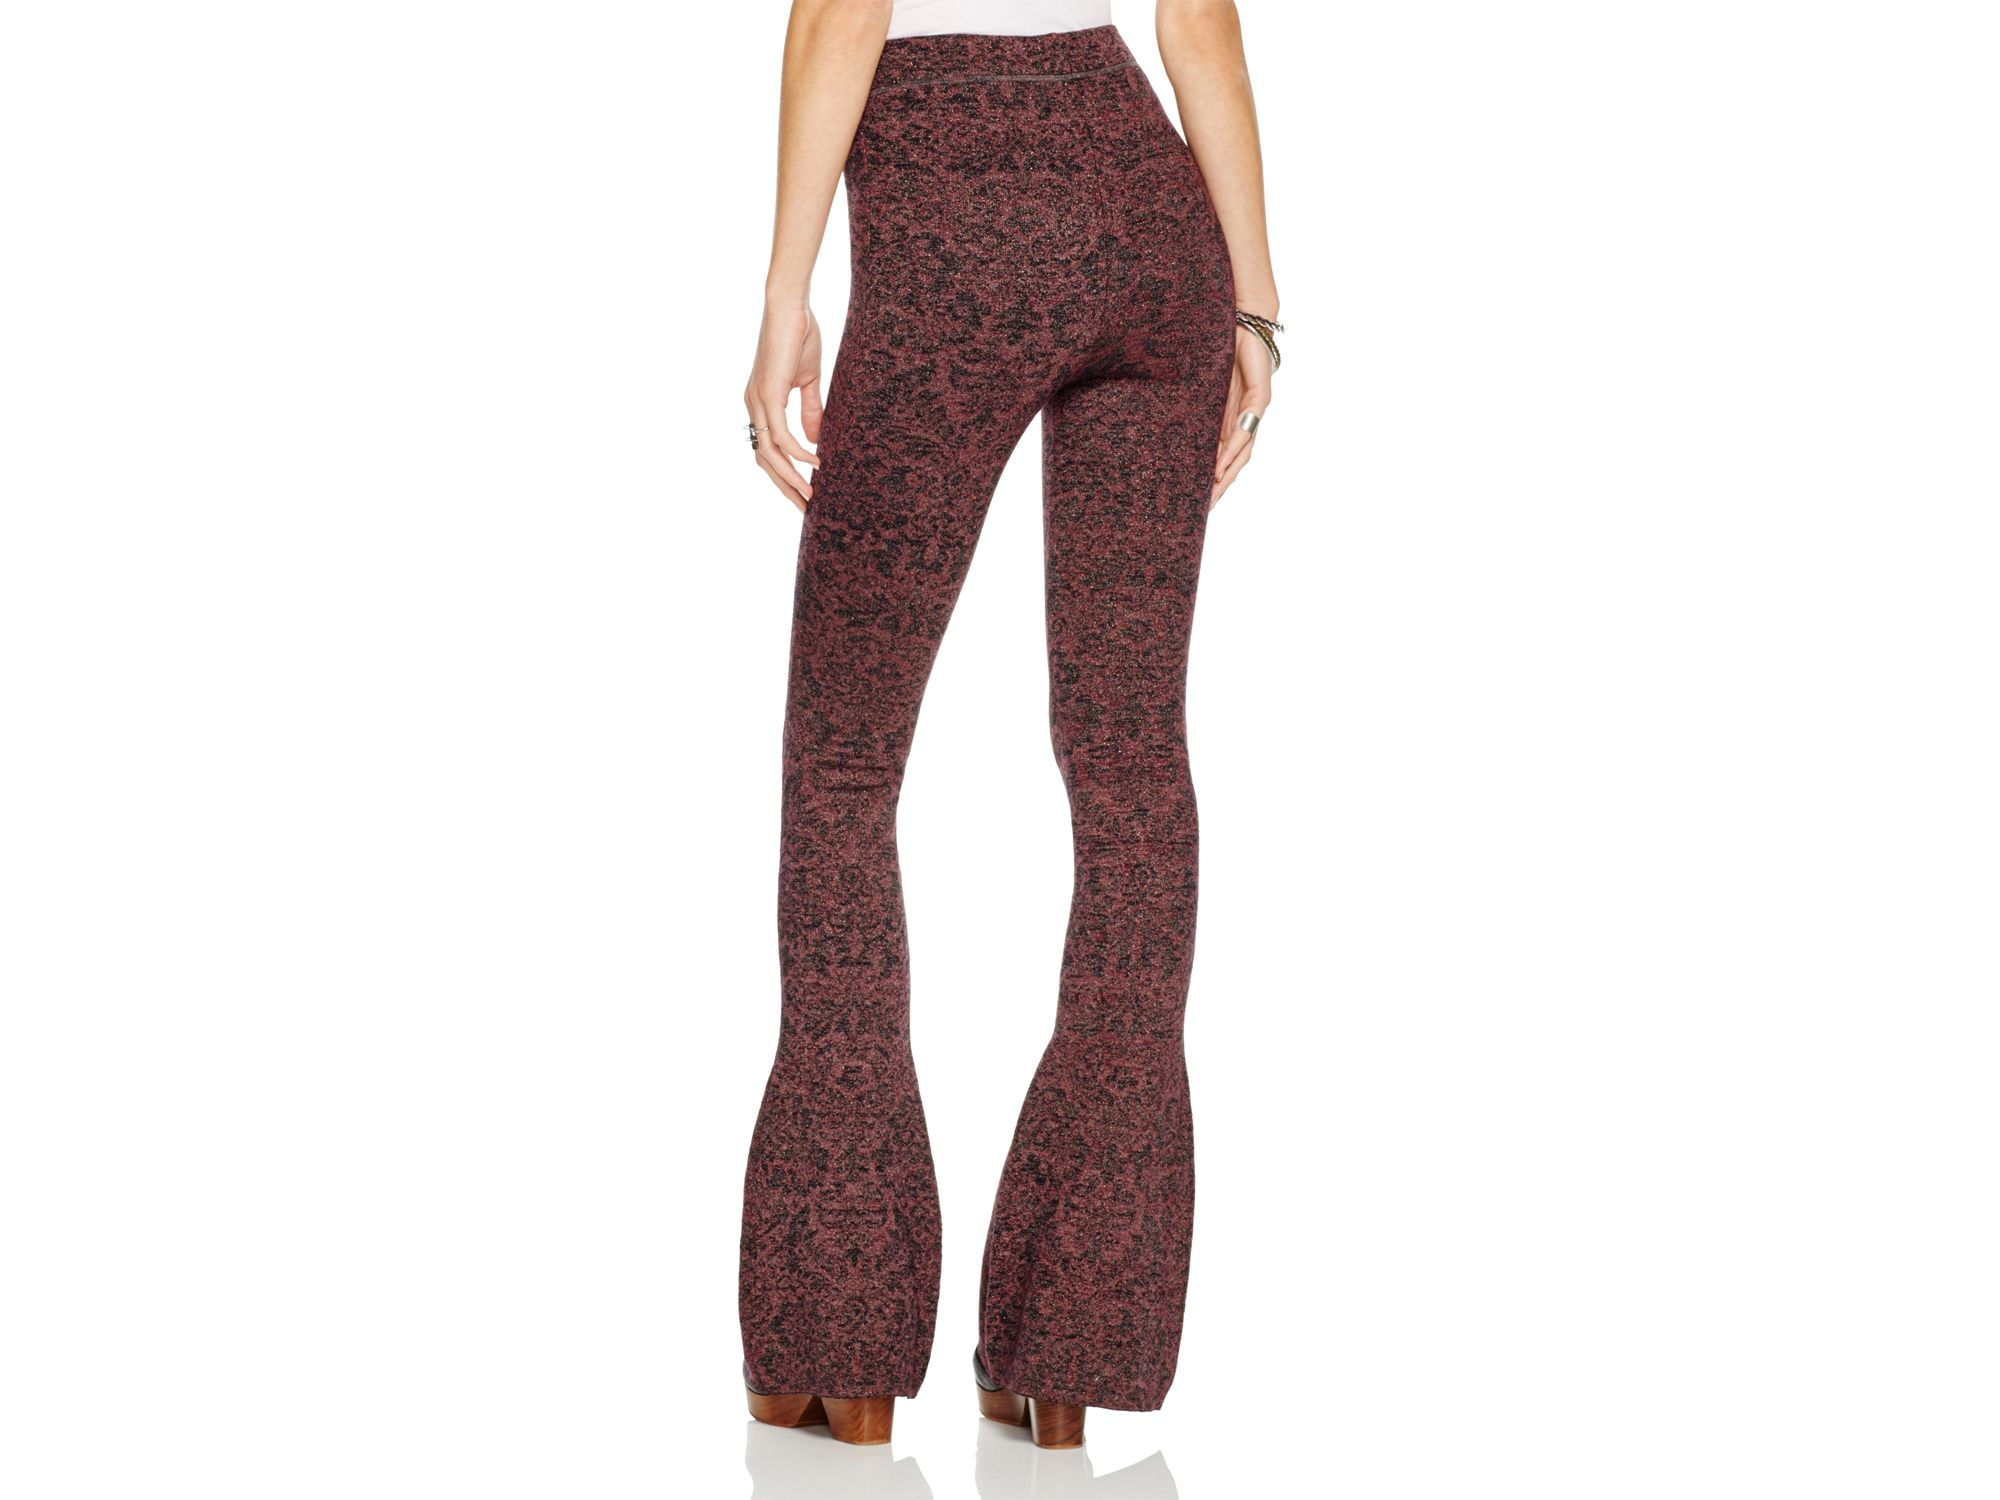 Original Basic Editions Women39s Plus PullOn Knit Sweat Pant